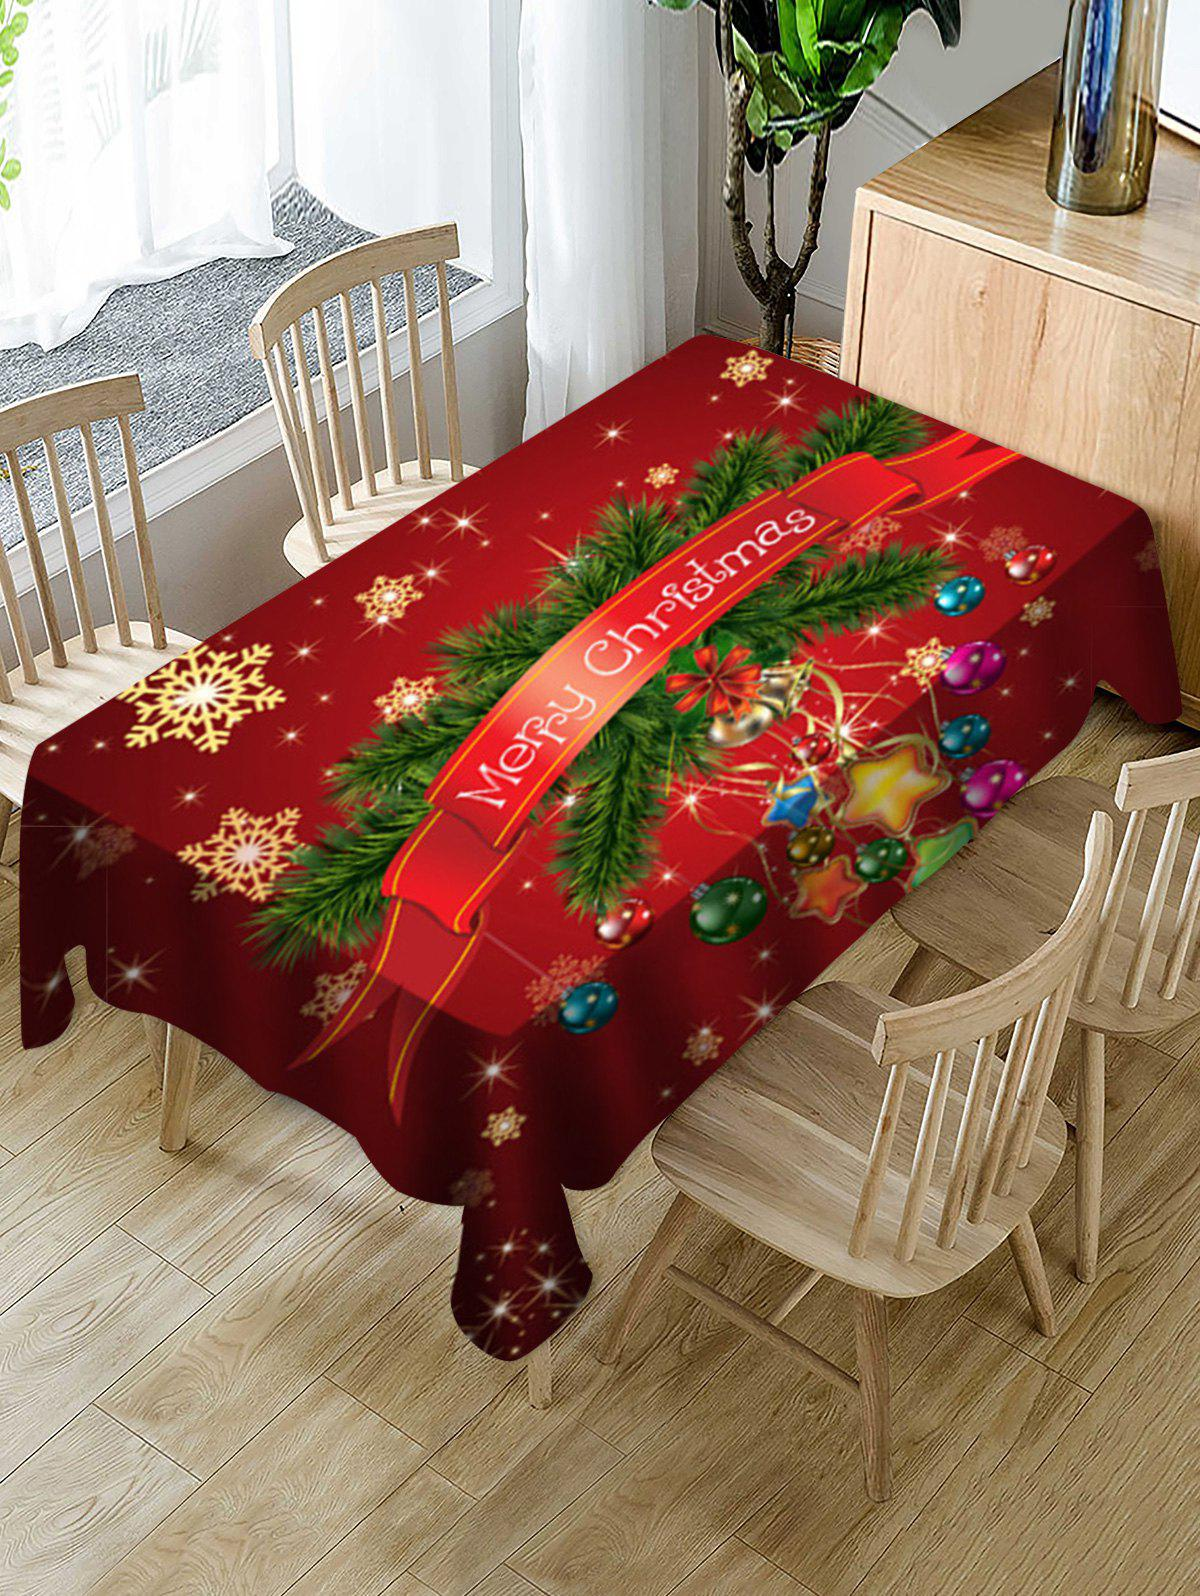 Affordable Merry Christmas Snowflake Print Fabric Waterproof Tablecloth